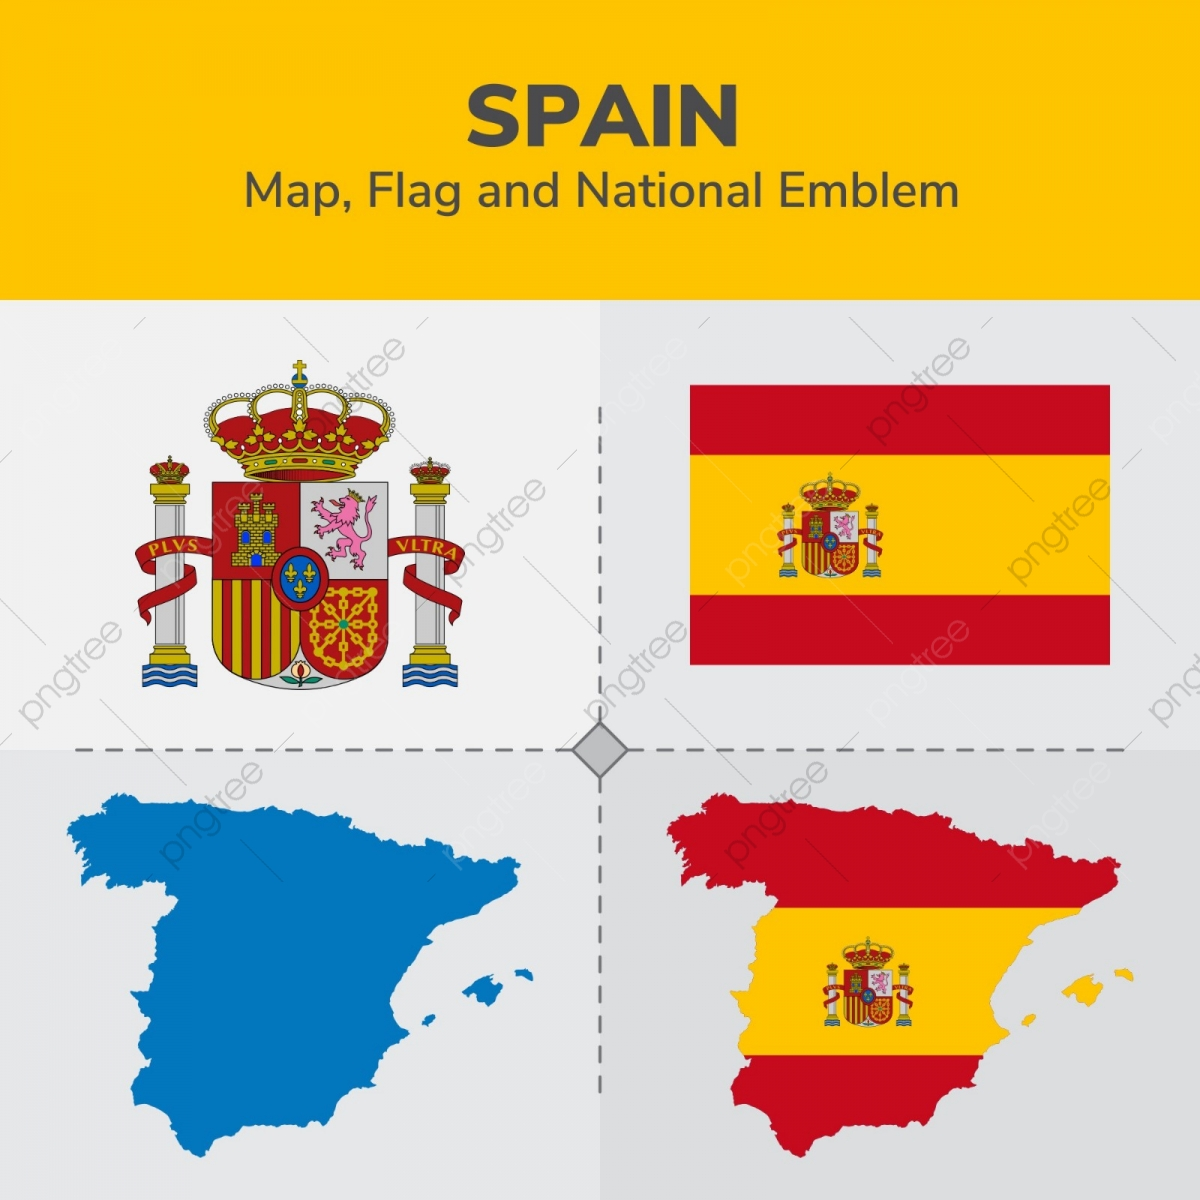 Map South Of Spain.Spain South Sudan Map Flag And National Emblem Continents